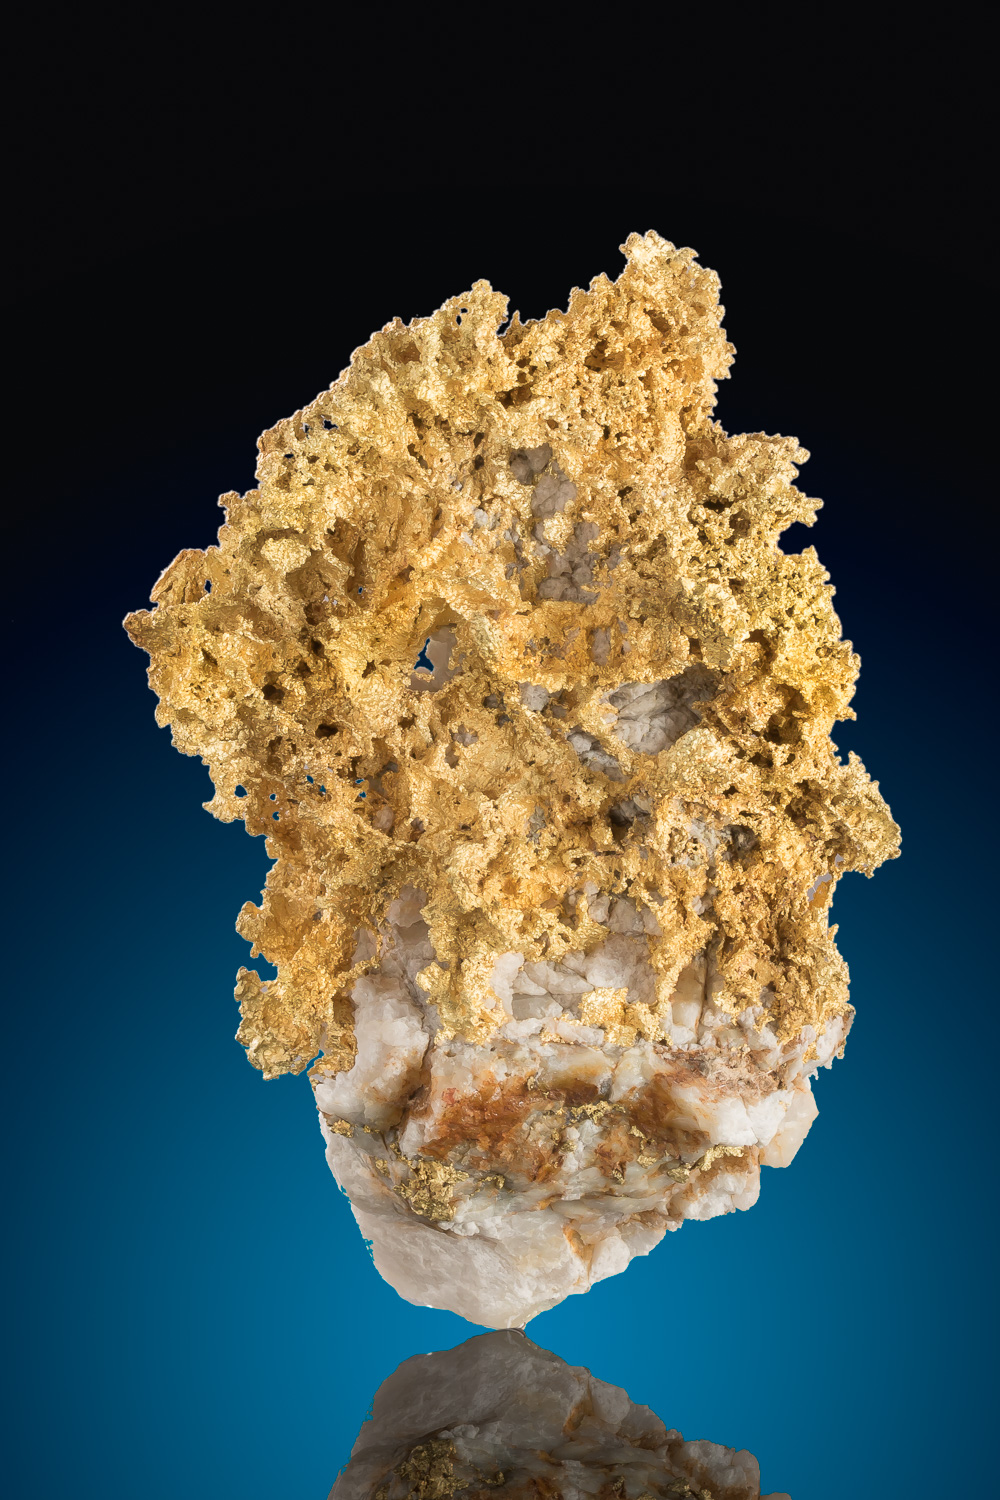 Rare Nevada Crystalline Gold In Quartz Specimen 5 200 00 Natural Gold Nuggets For Sale Buy Gold Nuggets And Specimens The Finest Jewelry Investment Grade Gold Nuggets From Around The World